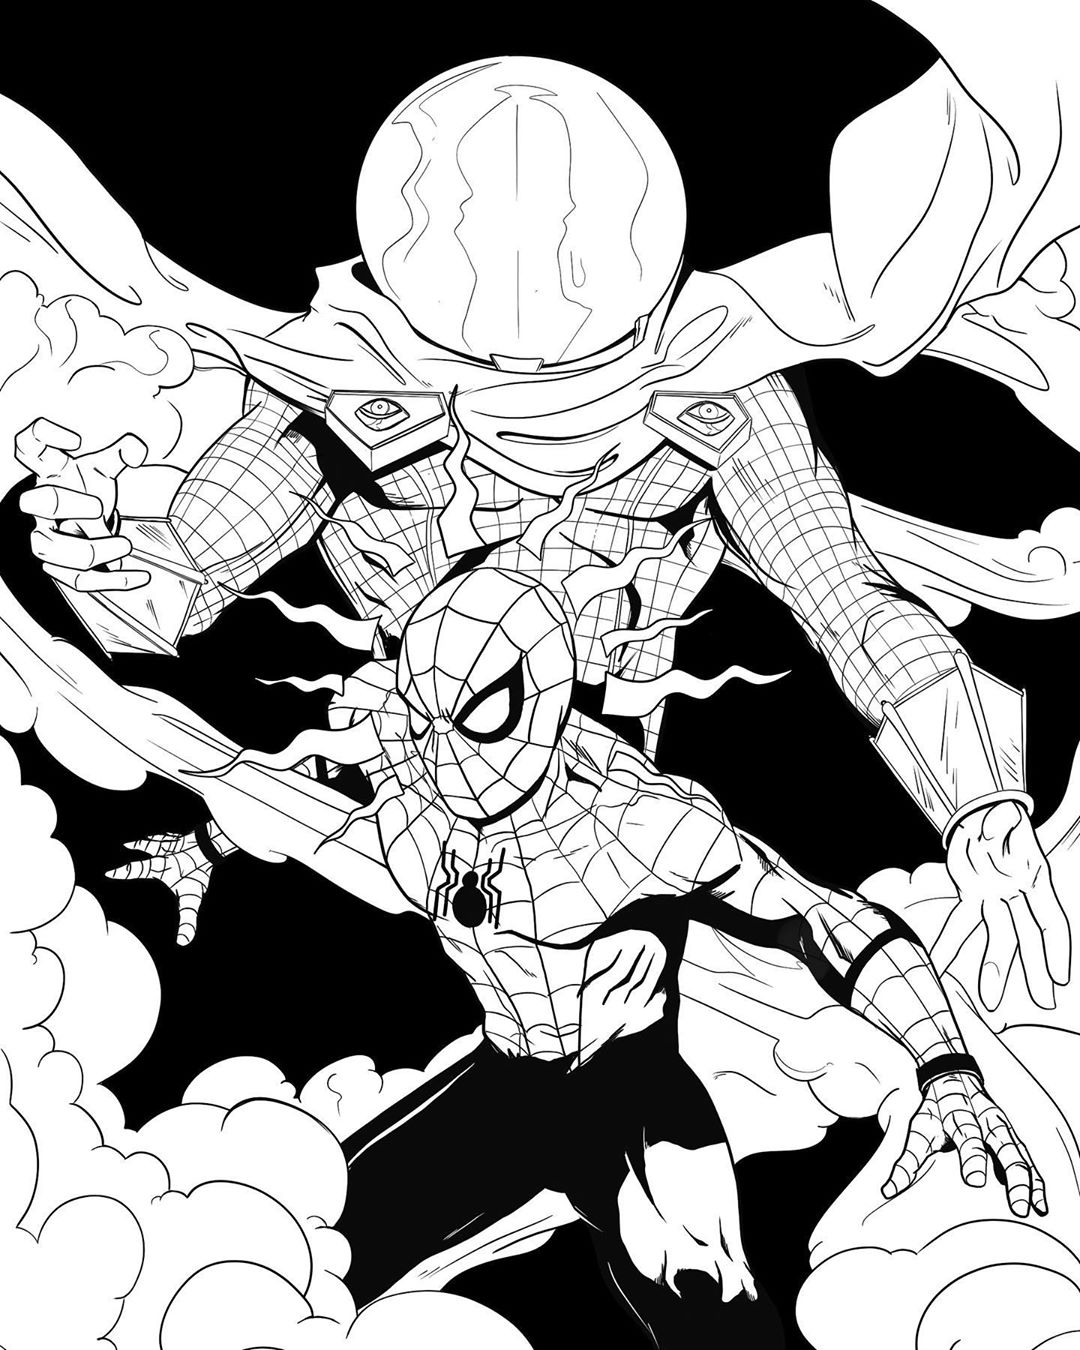 spider man stealth suit coloring page spider man superhero coloring pages spider man page stealth coloring suit